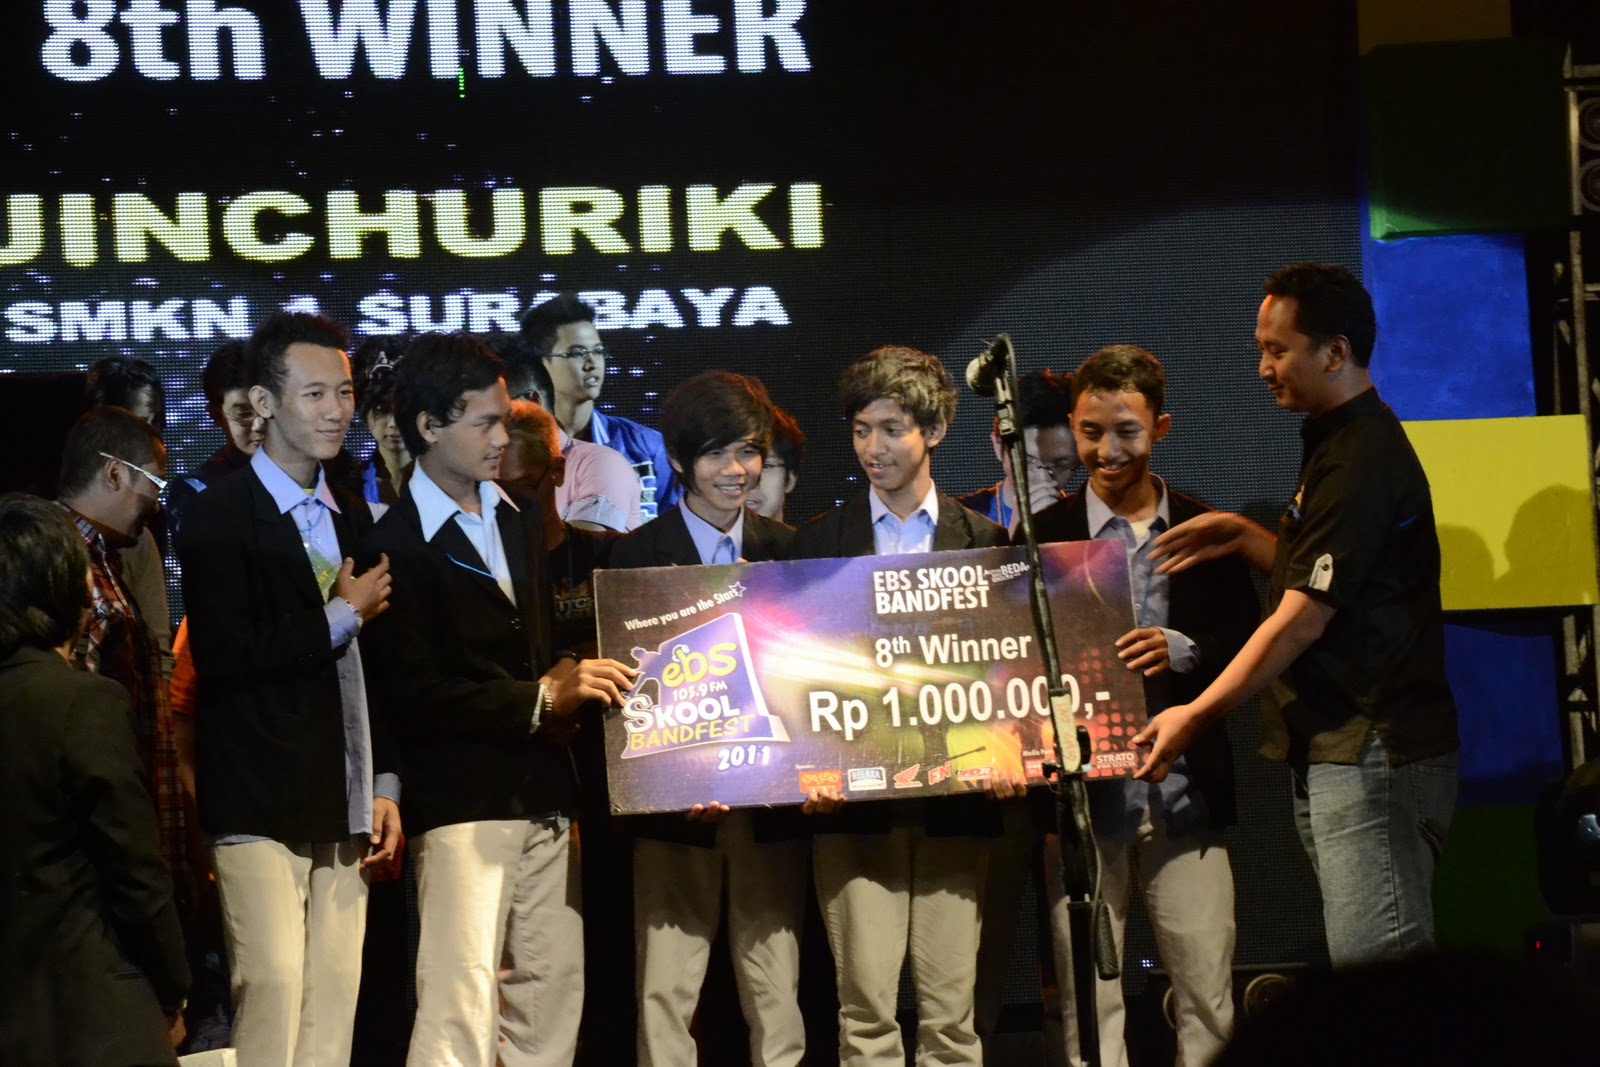 Jinchuriki (SMKN 1 Surabaya) : 8th Winner